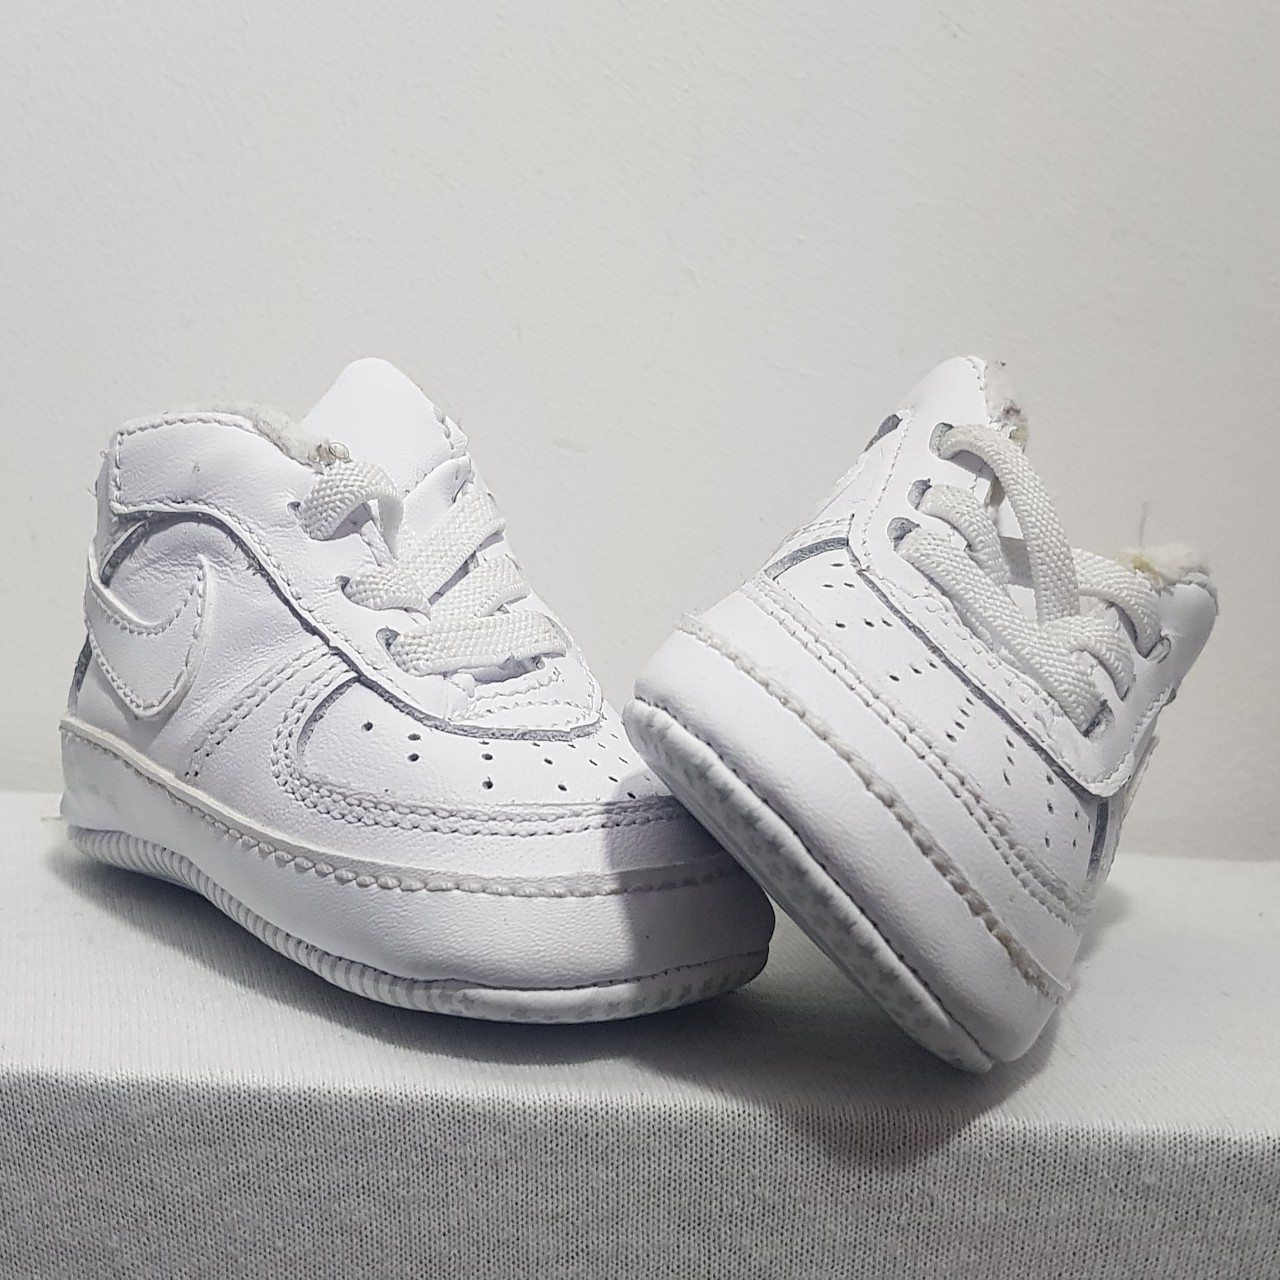 Baby soft bottom Nike Air Force 1s in